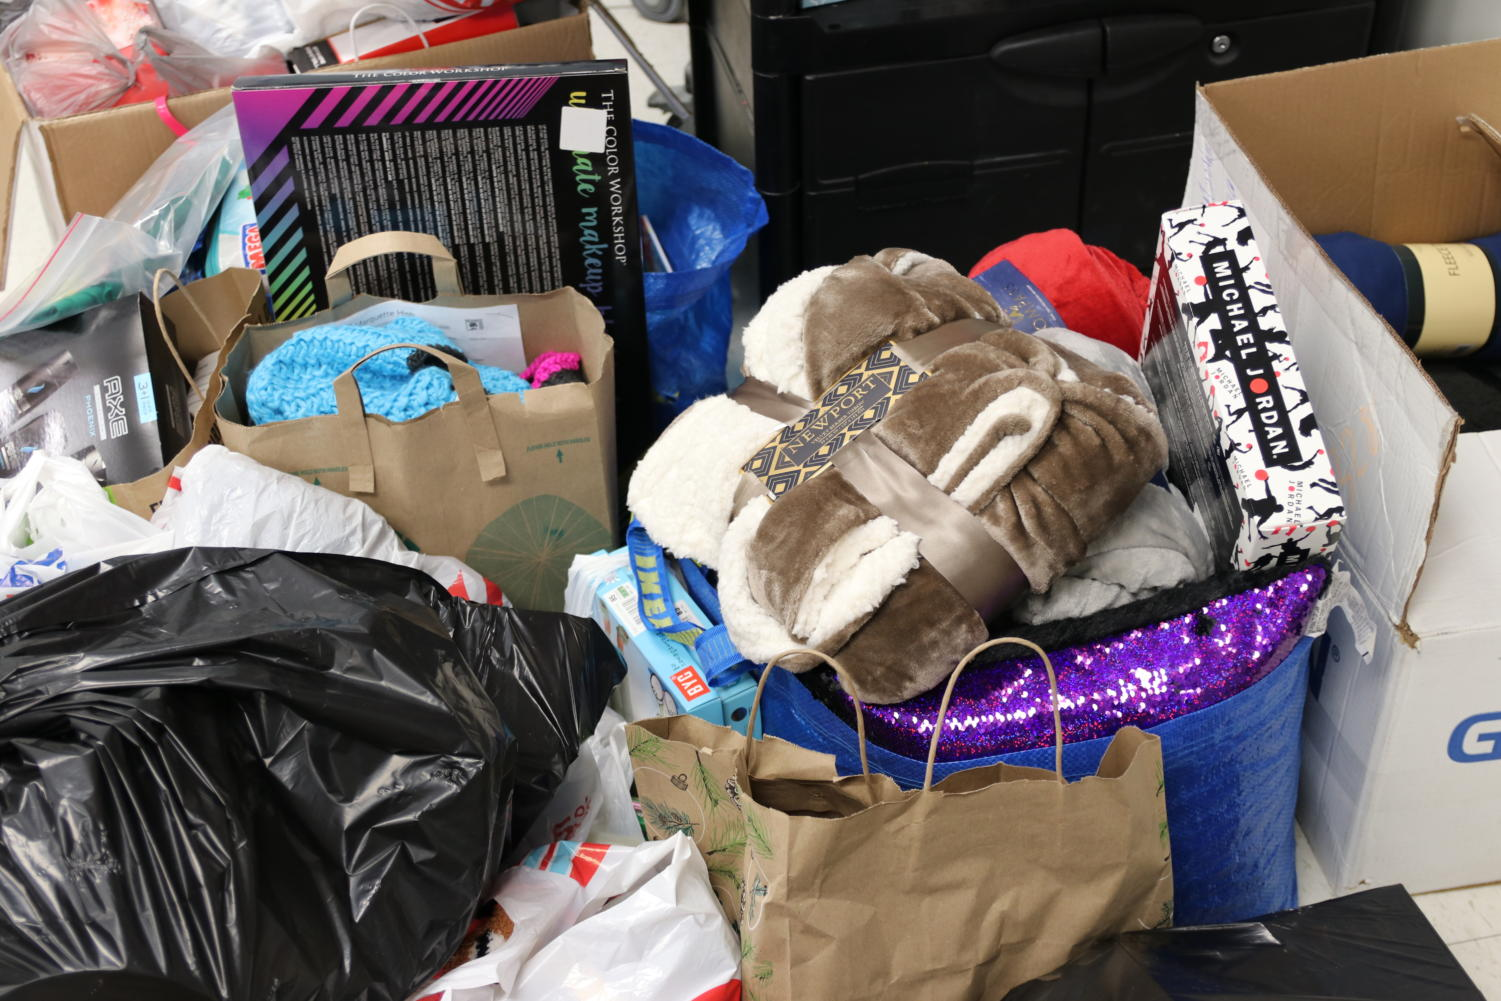 Bags and boxes of donated items, like blankets and games, were brought in by students, their families and teachers to be sent to the Jefferson County Foster Care as gifts for their holiday party. Key Club is accepting donations until Friday, Nov. 30 in Rooms 328, 217, 212 and in front of the Library.